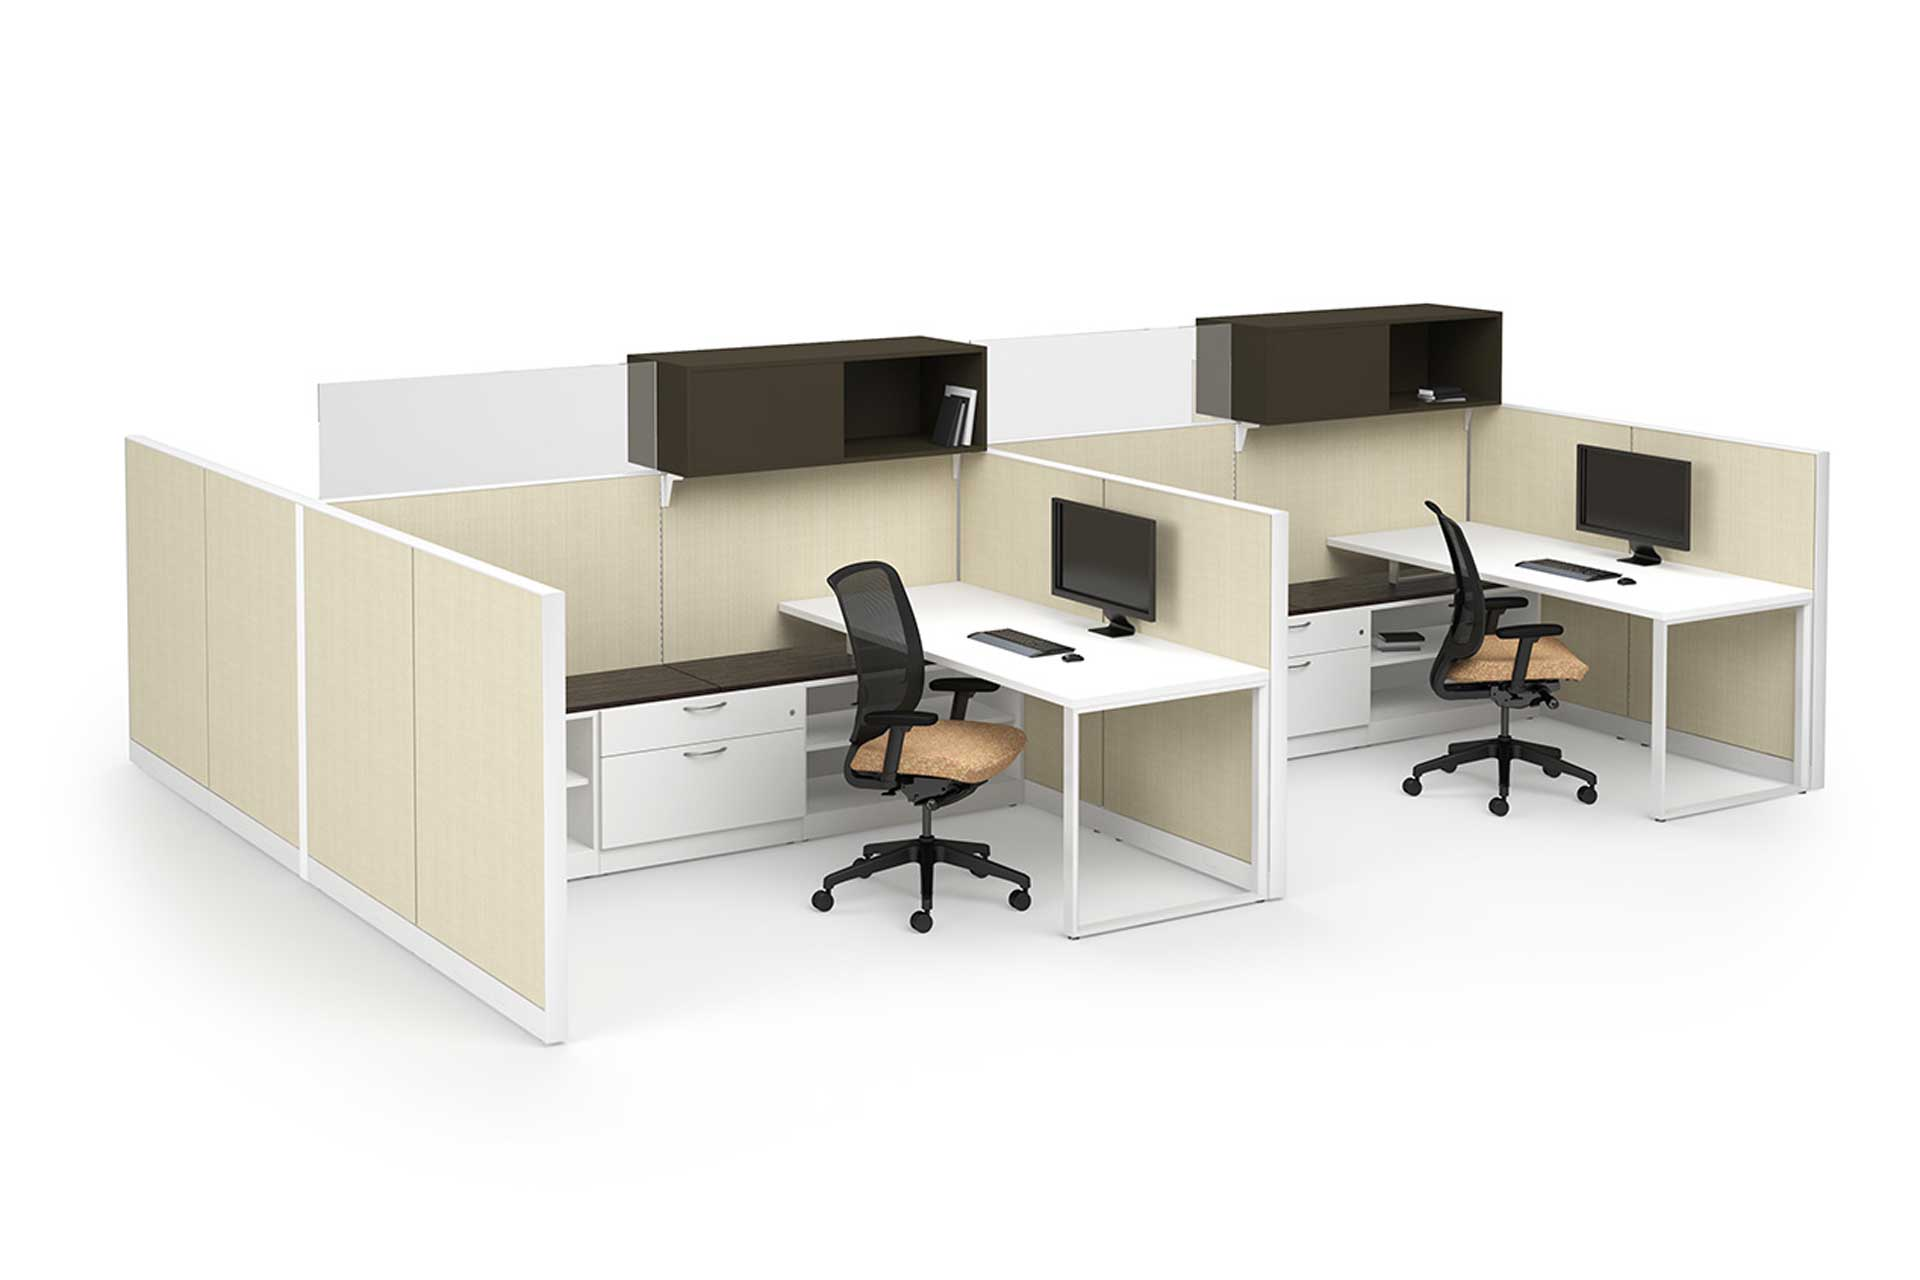 Two office cubicles with swivel chairs, desks, computer monitors, and overhead cabinets against white background